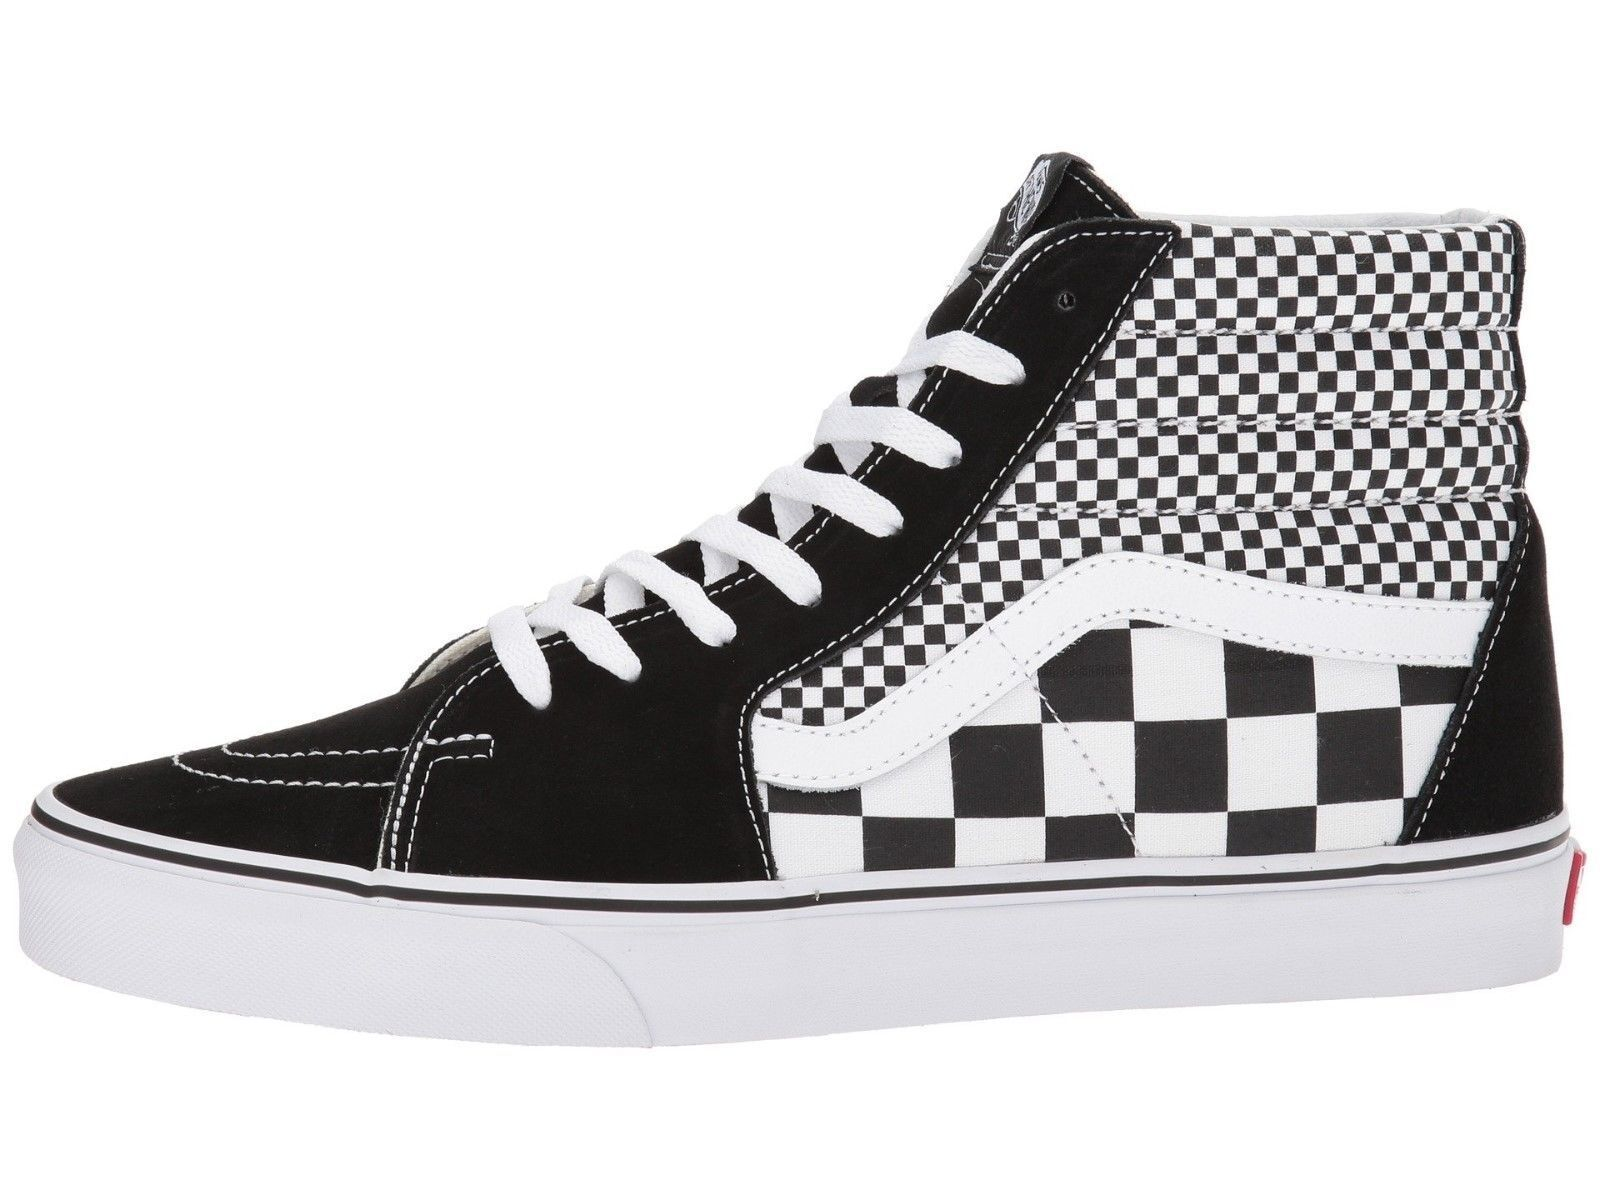 Vans Mix Checker Black   White Checkered Sk8 Sk8 Sk8 Hi Mens shoes a09976